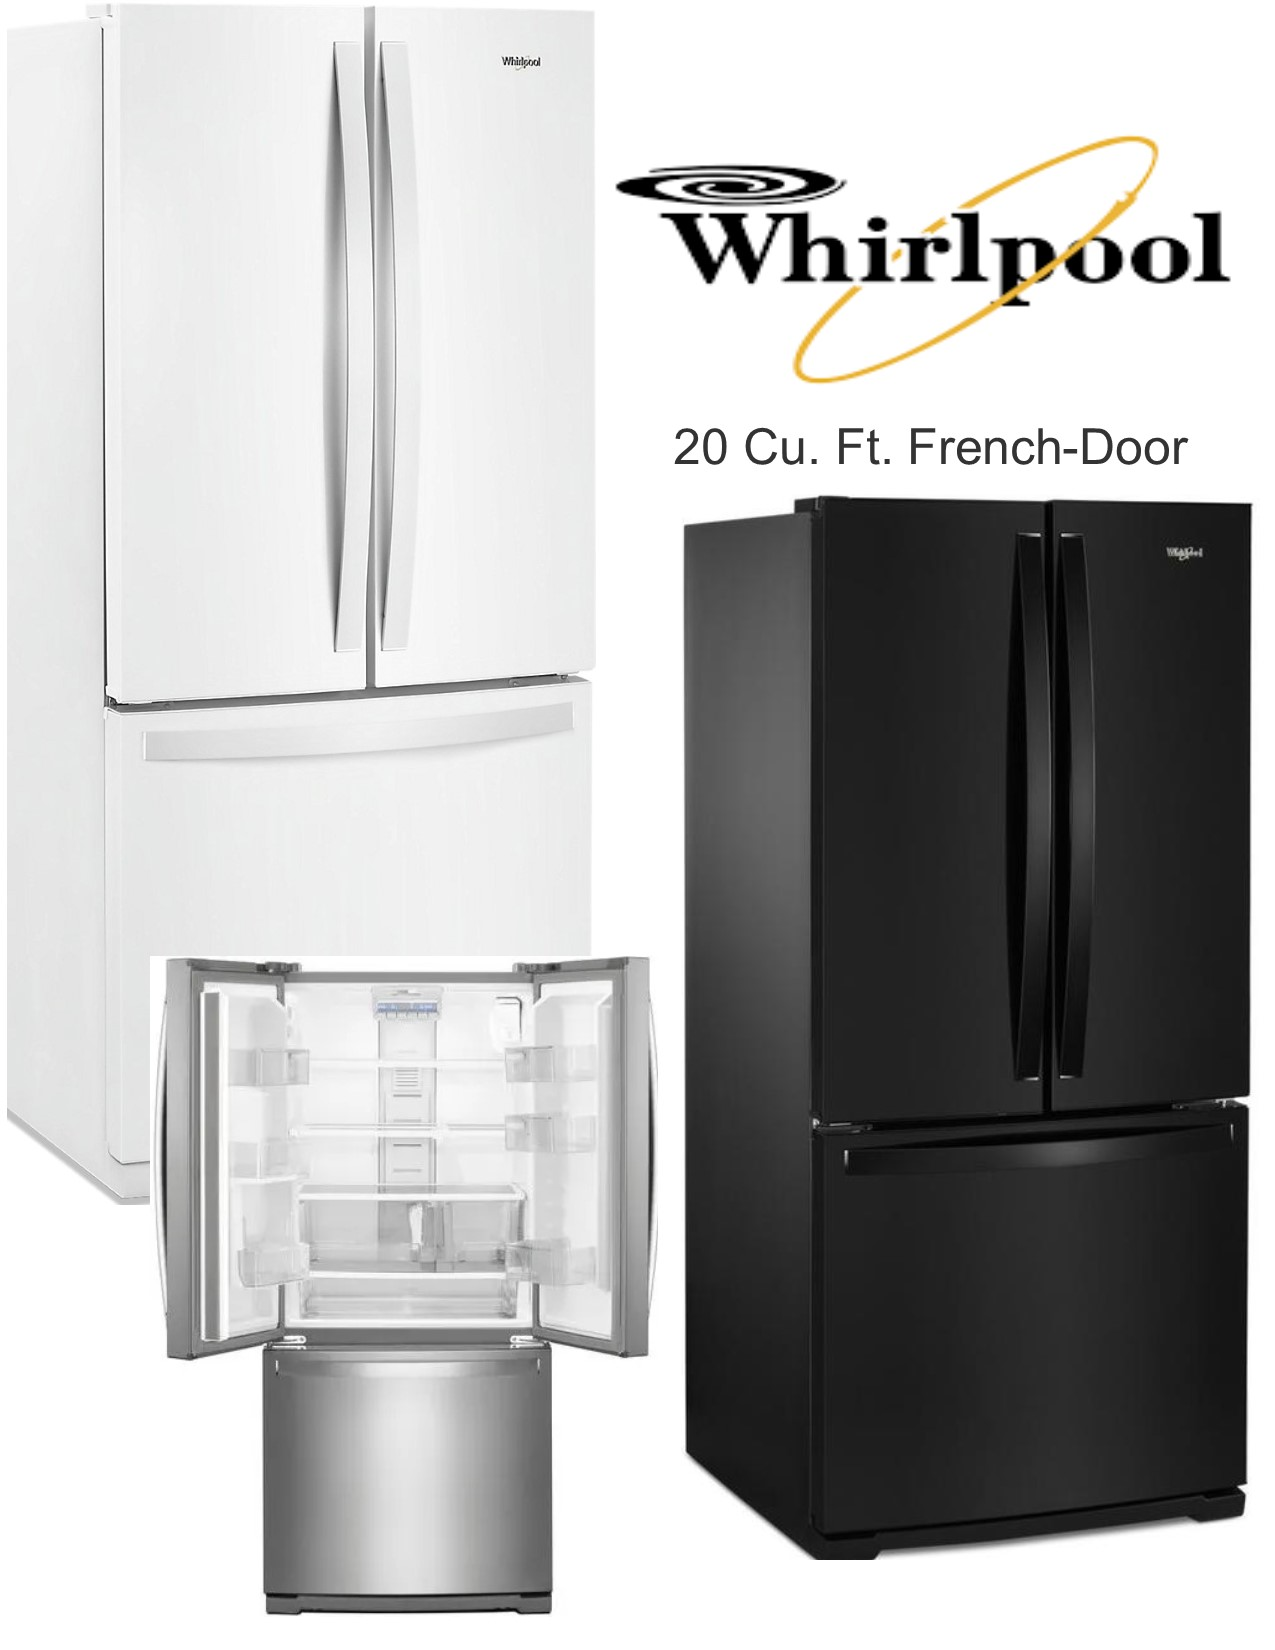 Whirlpool 20 Cu.Ft. French Door Refrigerator | Nations